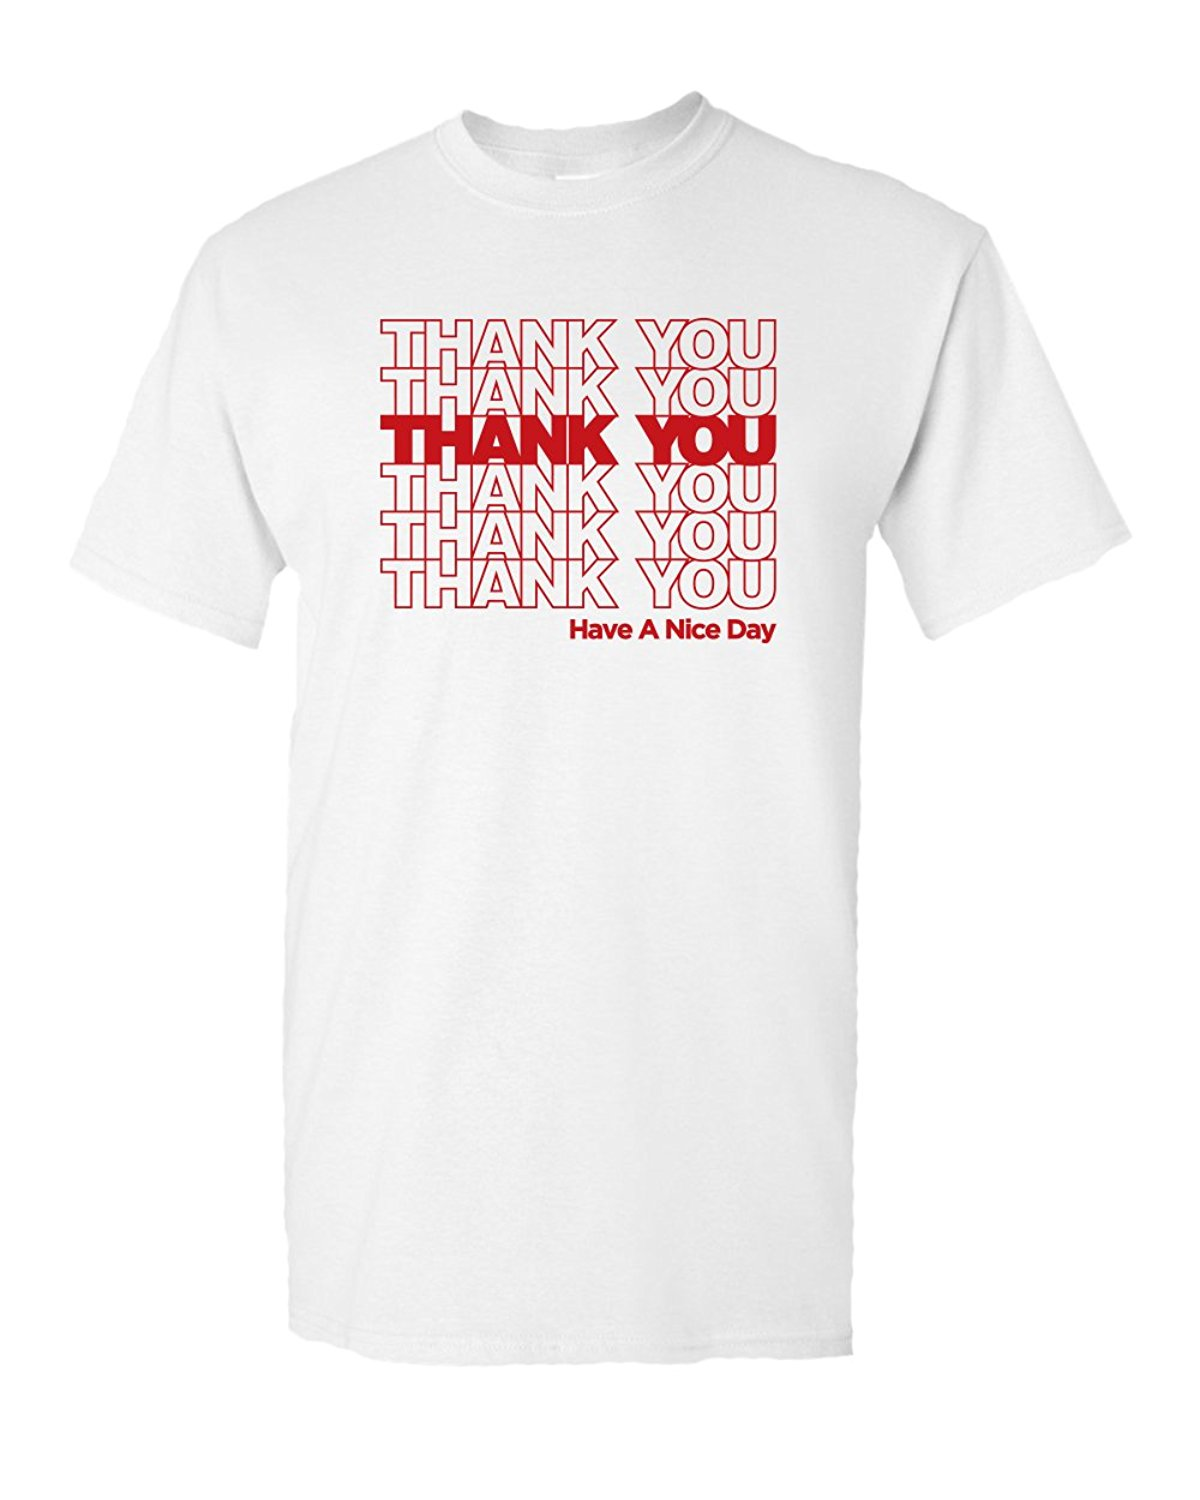 Thank You Bag Sack Tee Thankyou Shop Store grocery Novelty Classic Funny Humor Pun Graphic Adult Mens T-Shirt